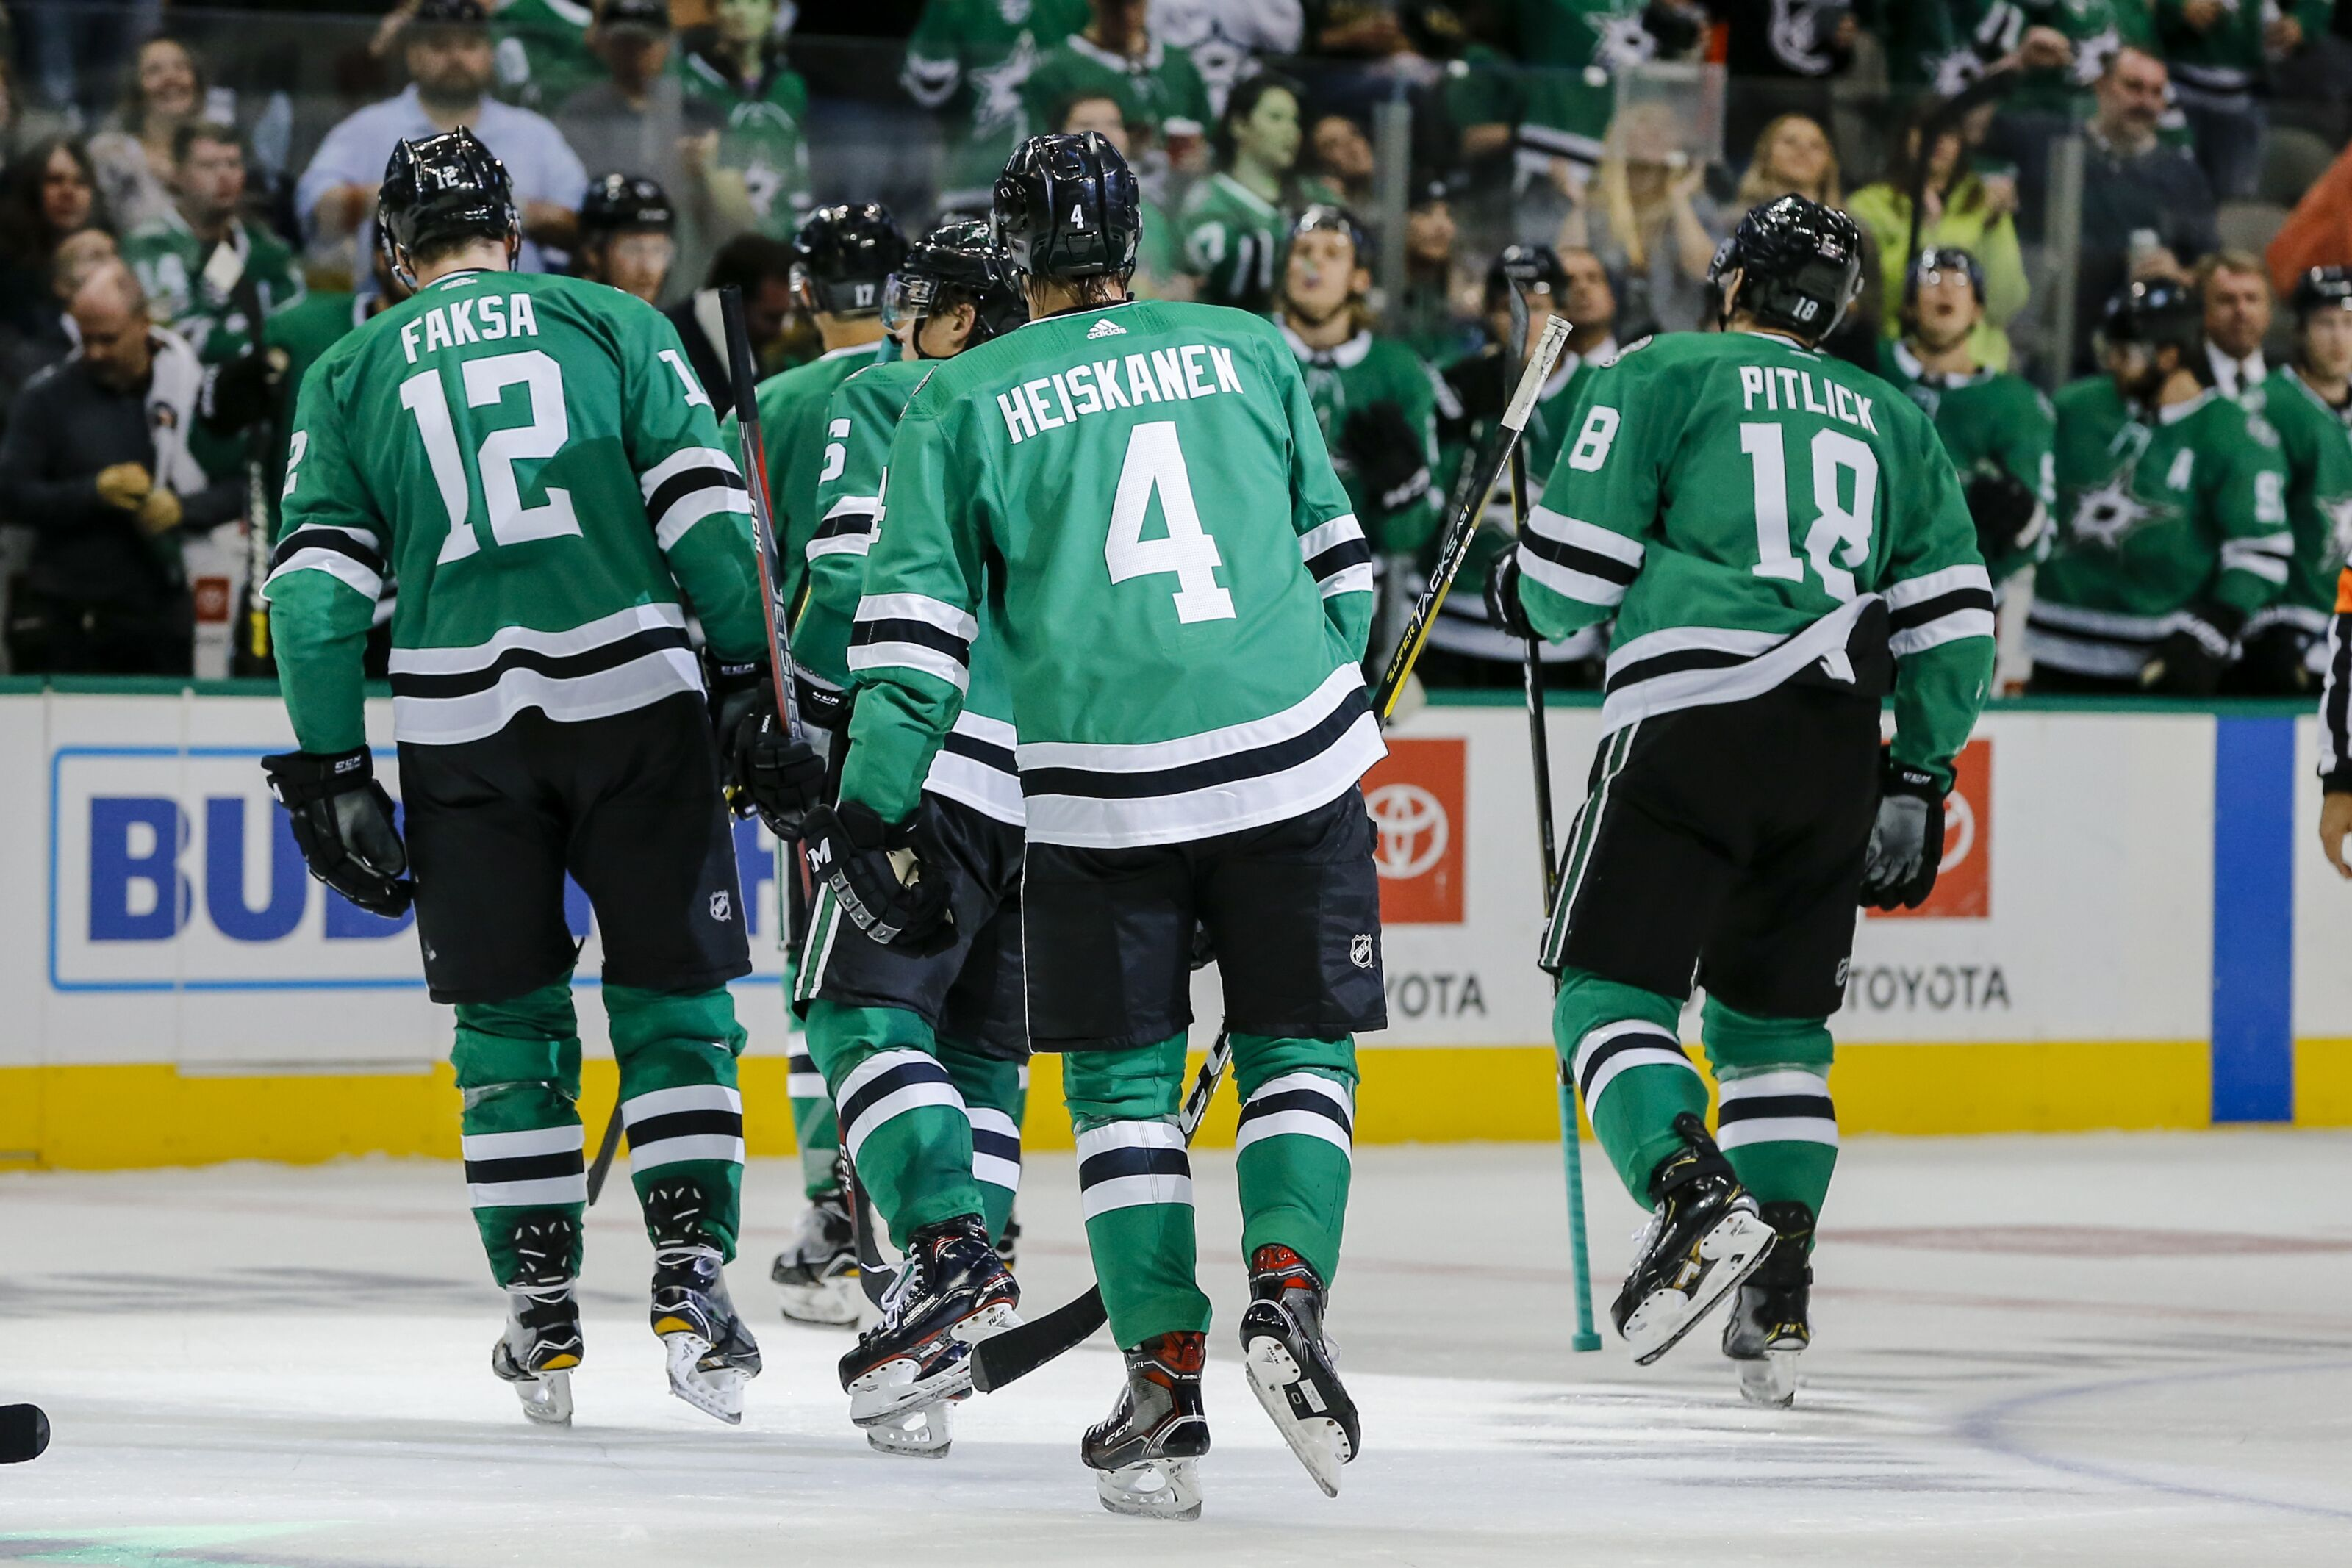 Dallas Stars Aiming To Focus On Process For Season Opener vs. Coyotes bc71ee3d4